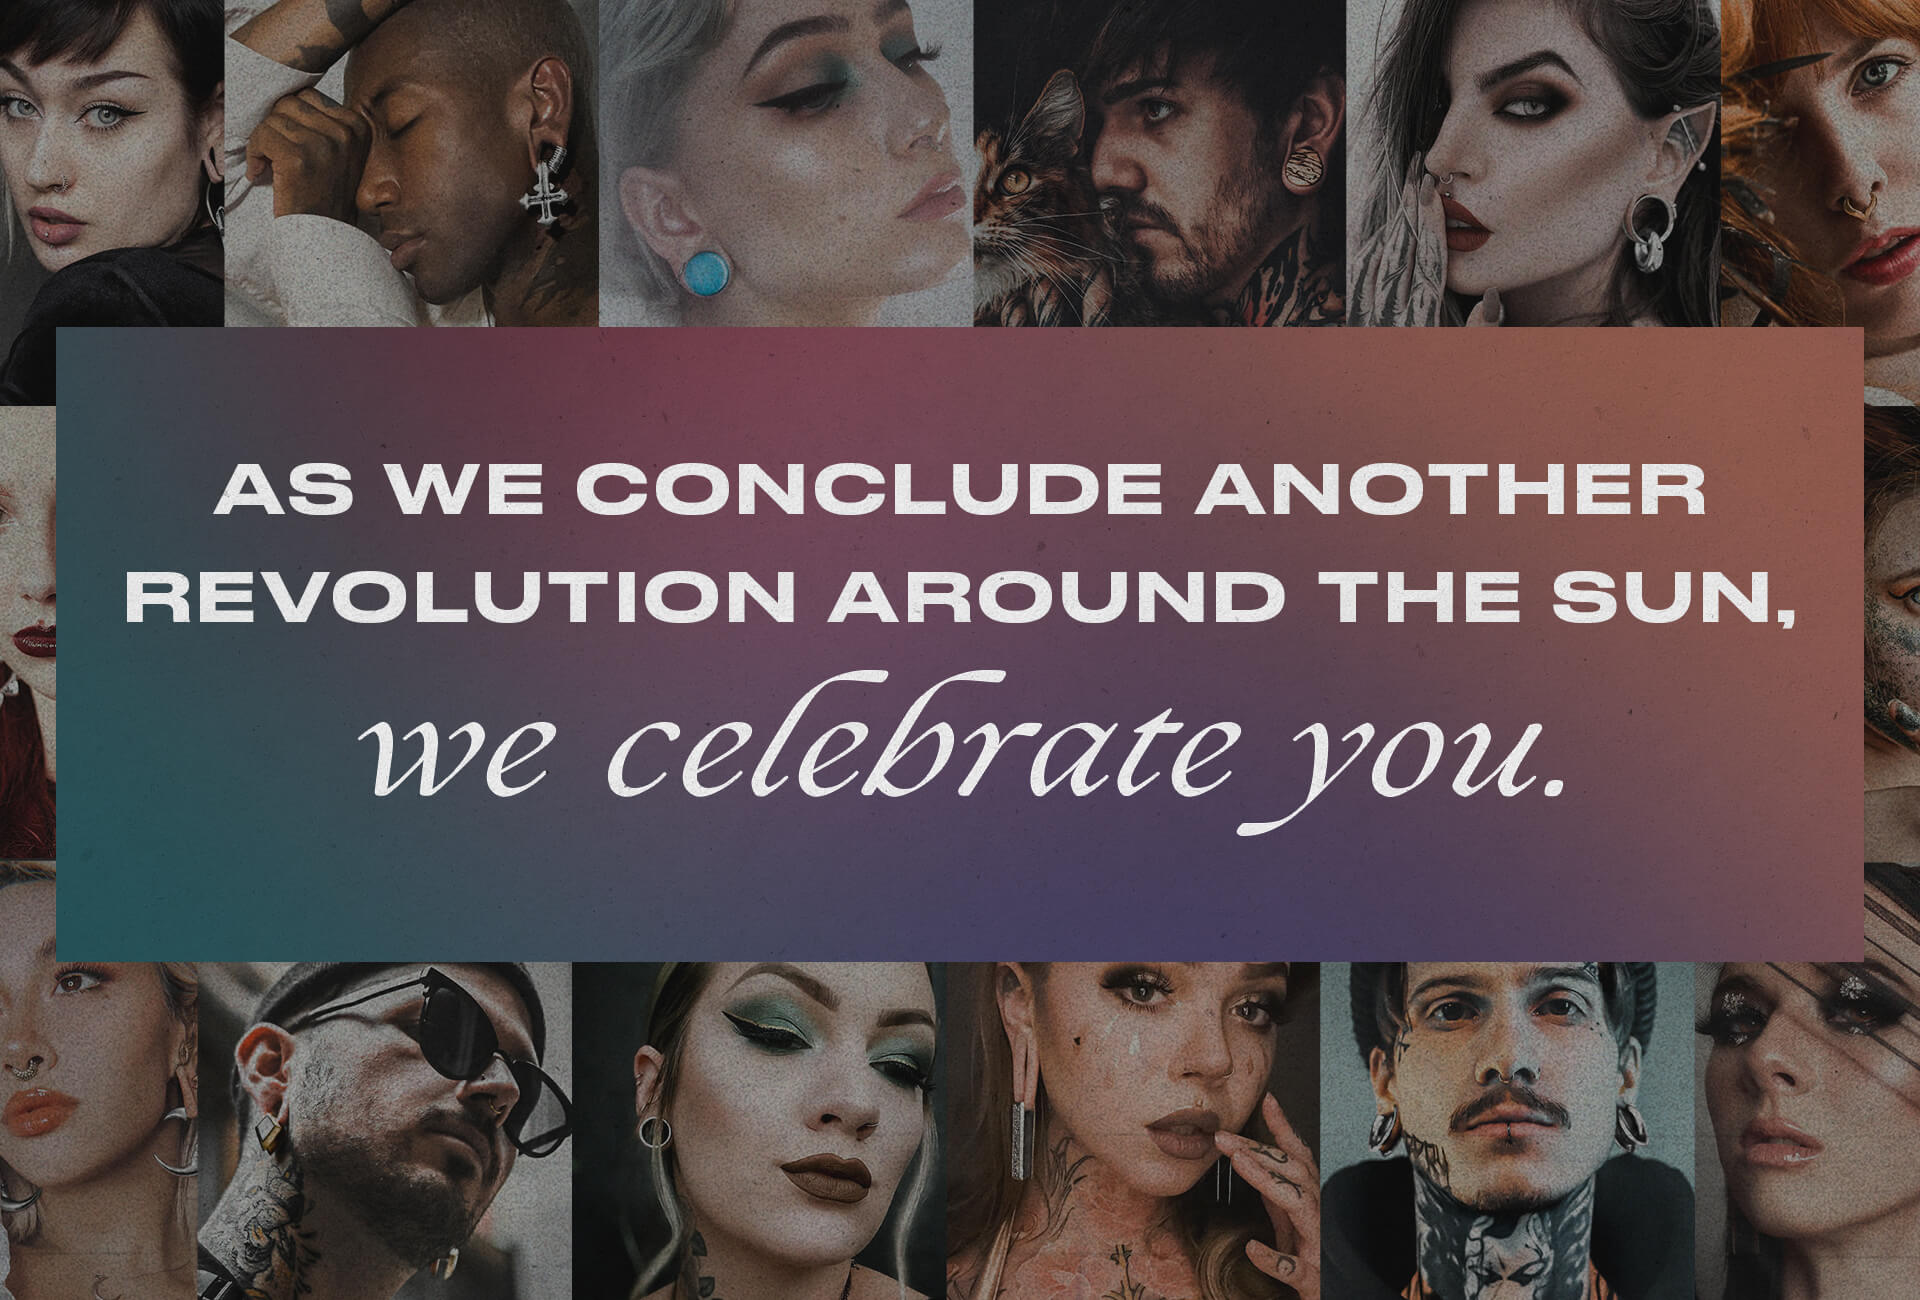 As we conclude another revolution around the sun, we celebrate you.